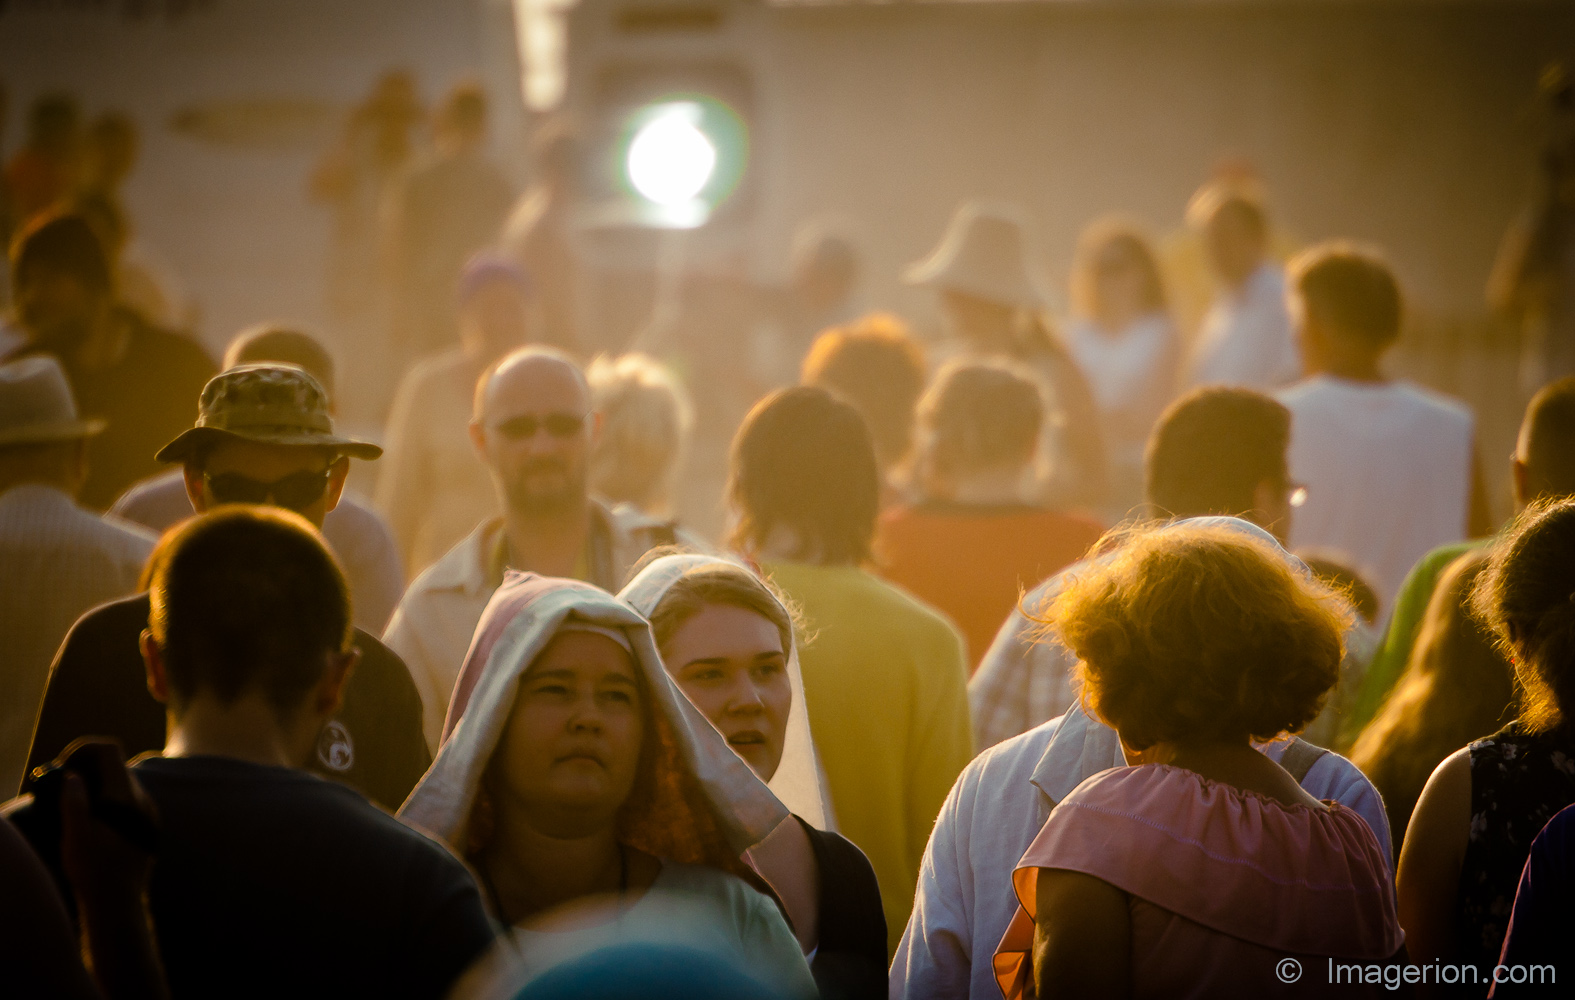 Modern crowd in a mist of dust and medieval women walking through